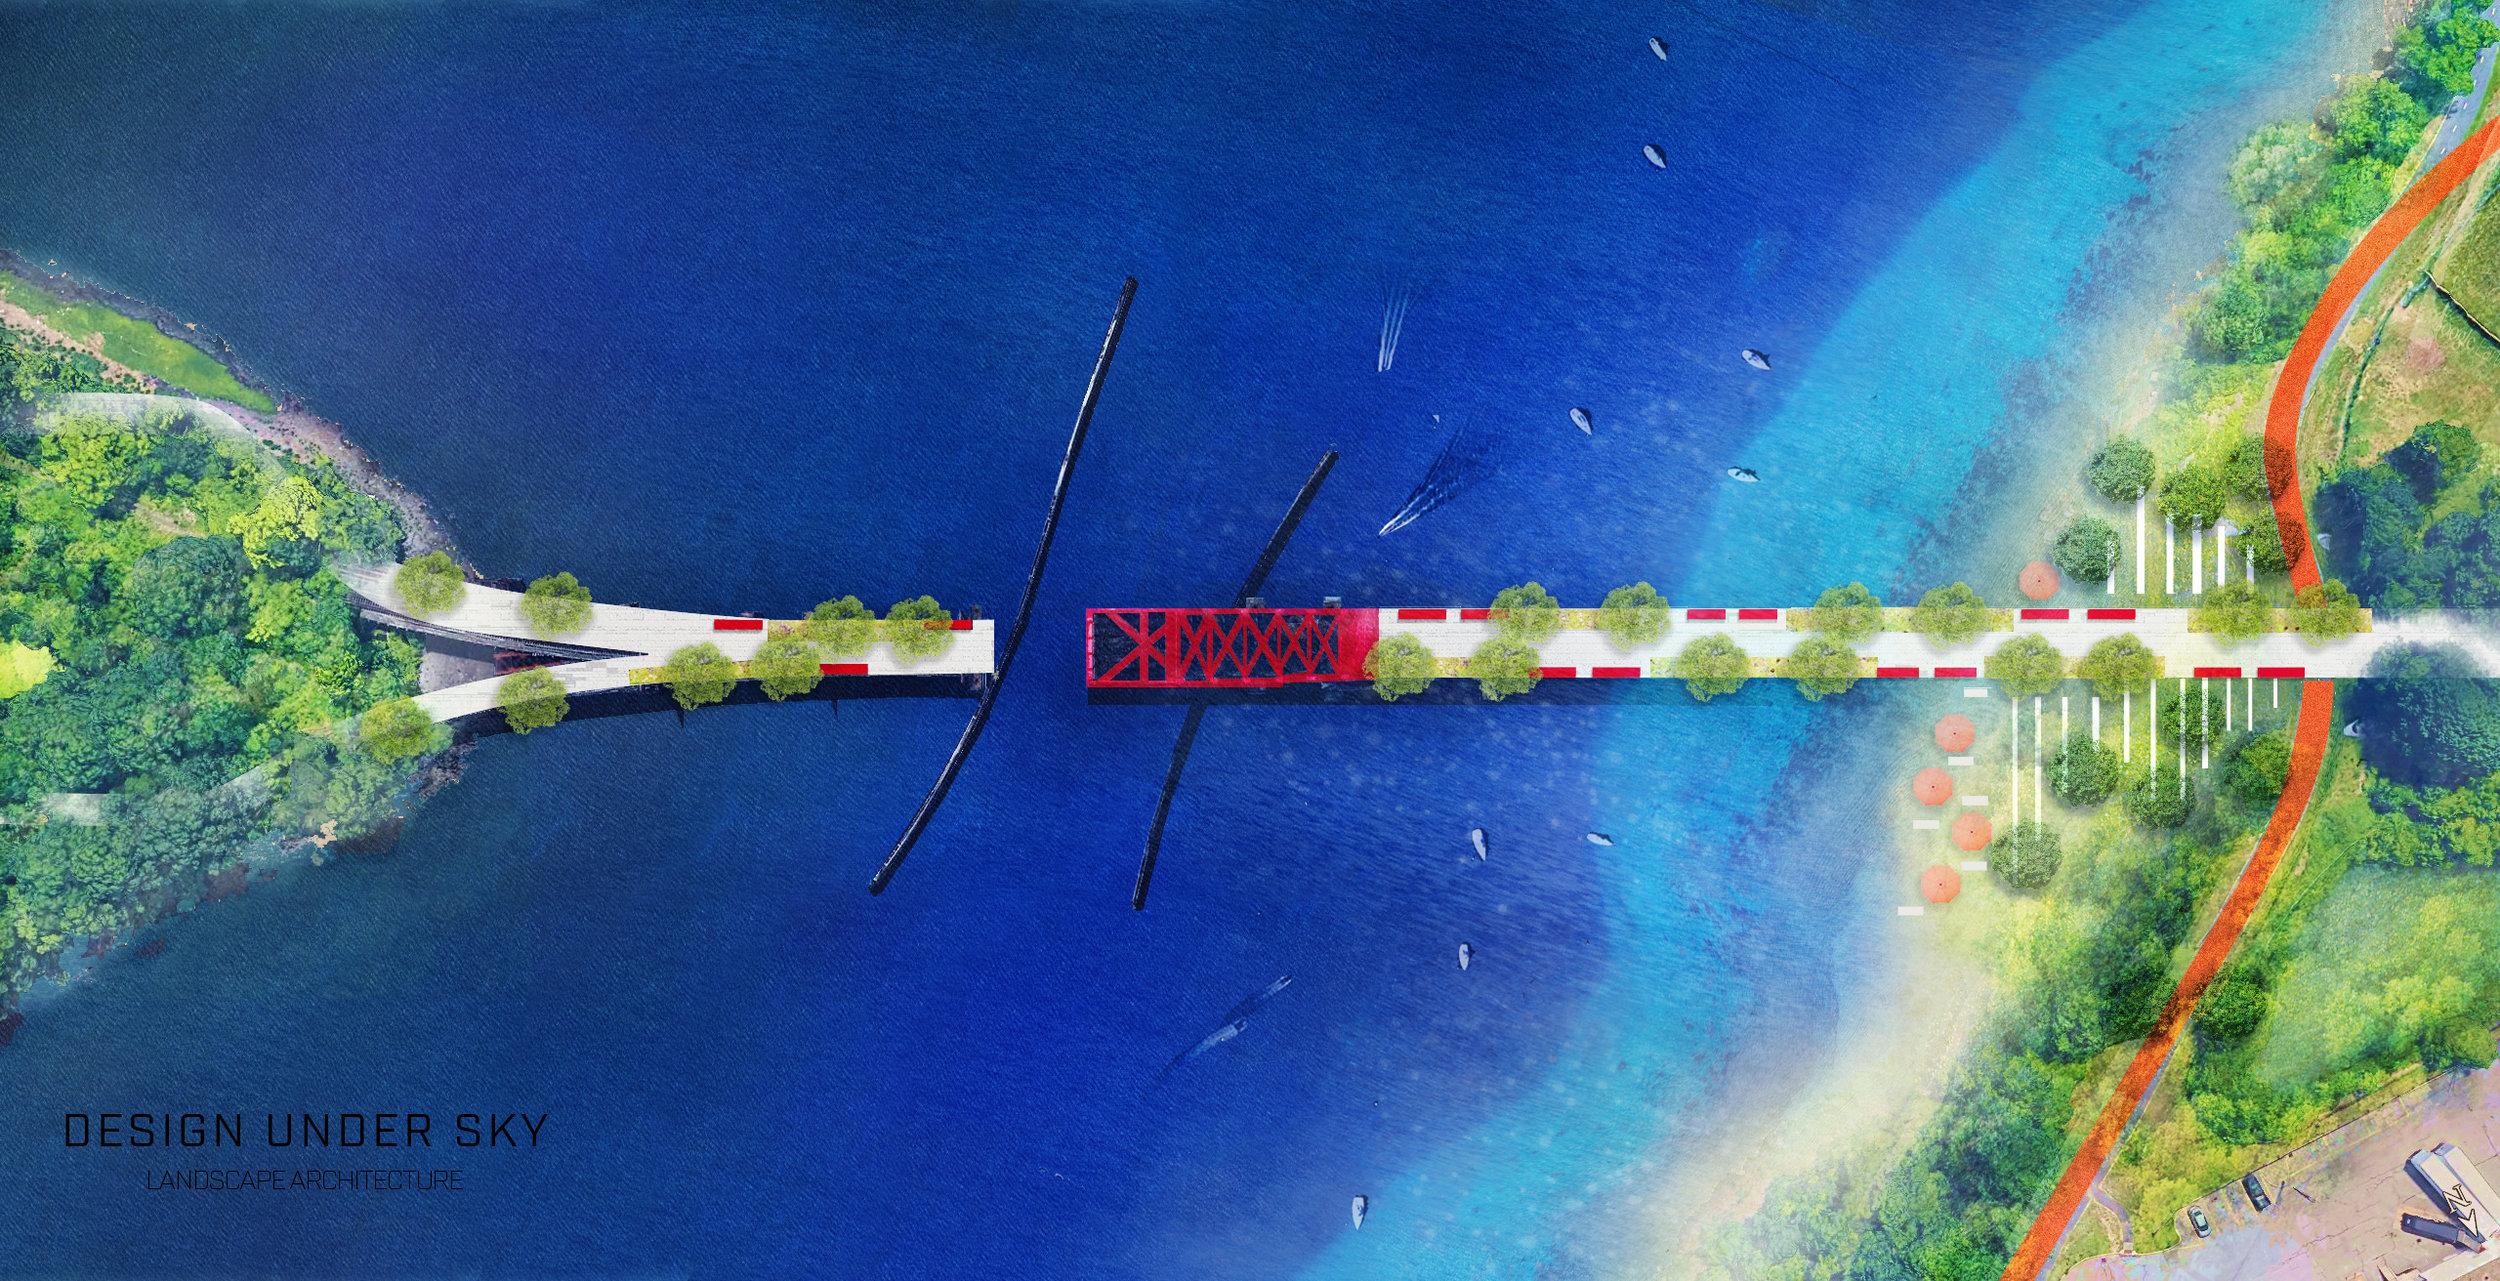 Conceptual Plan View Rendering by Design Under Sky